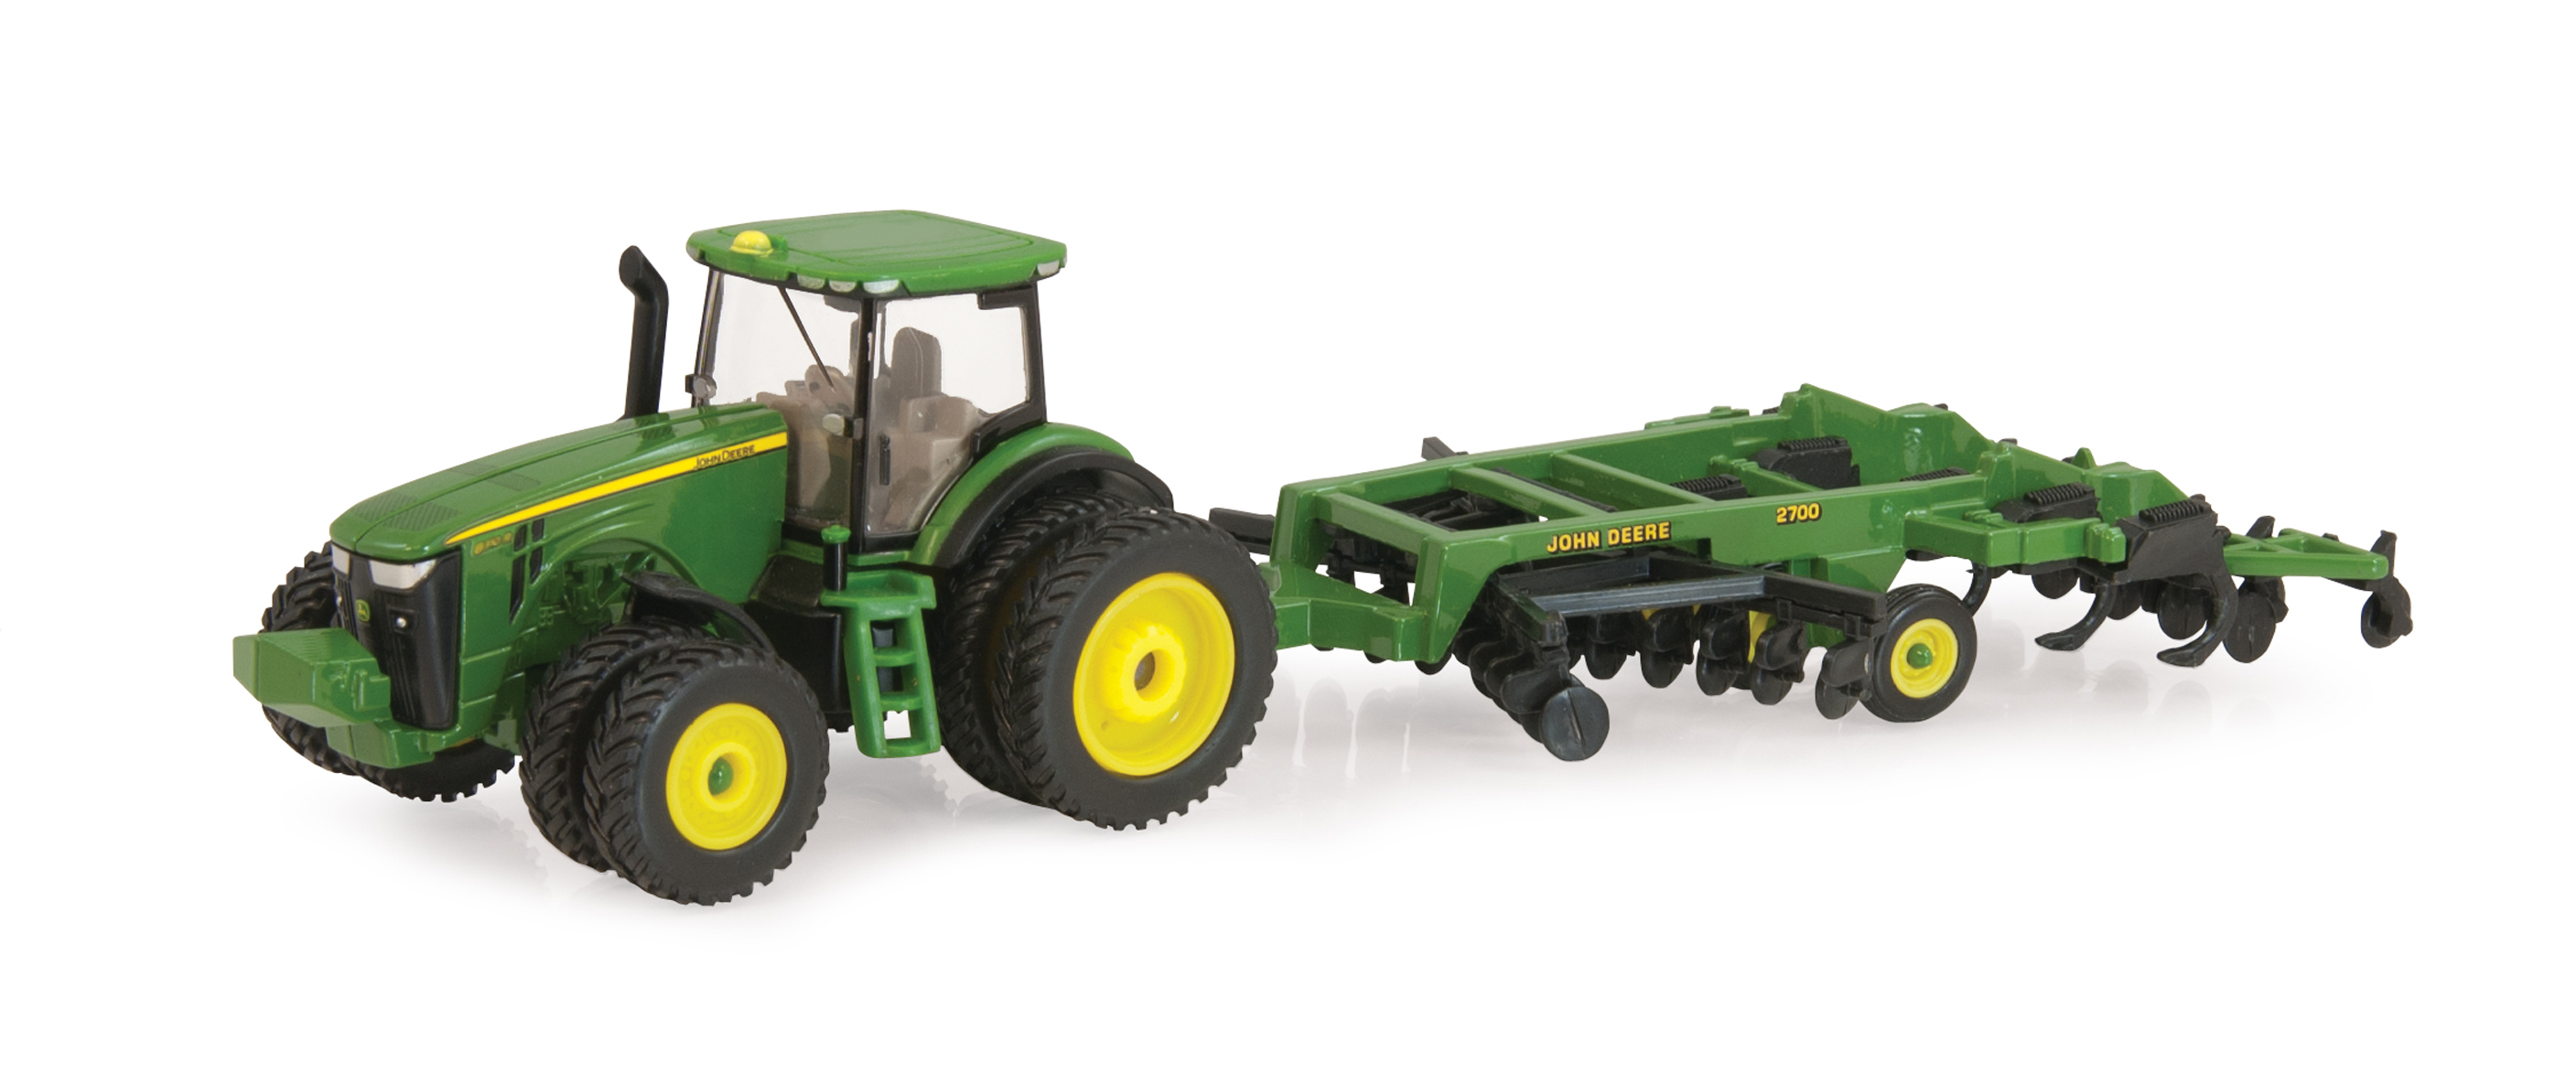 John Deere 8285R Tractor with 2700 Mulch Ripper | Down On ...